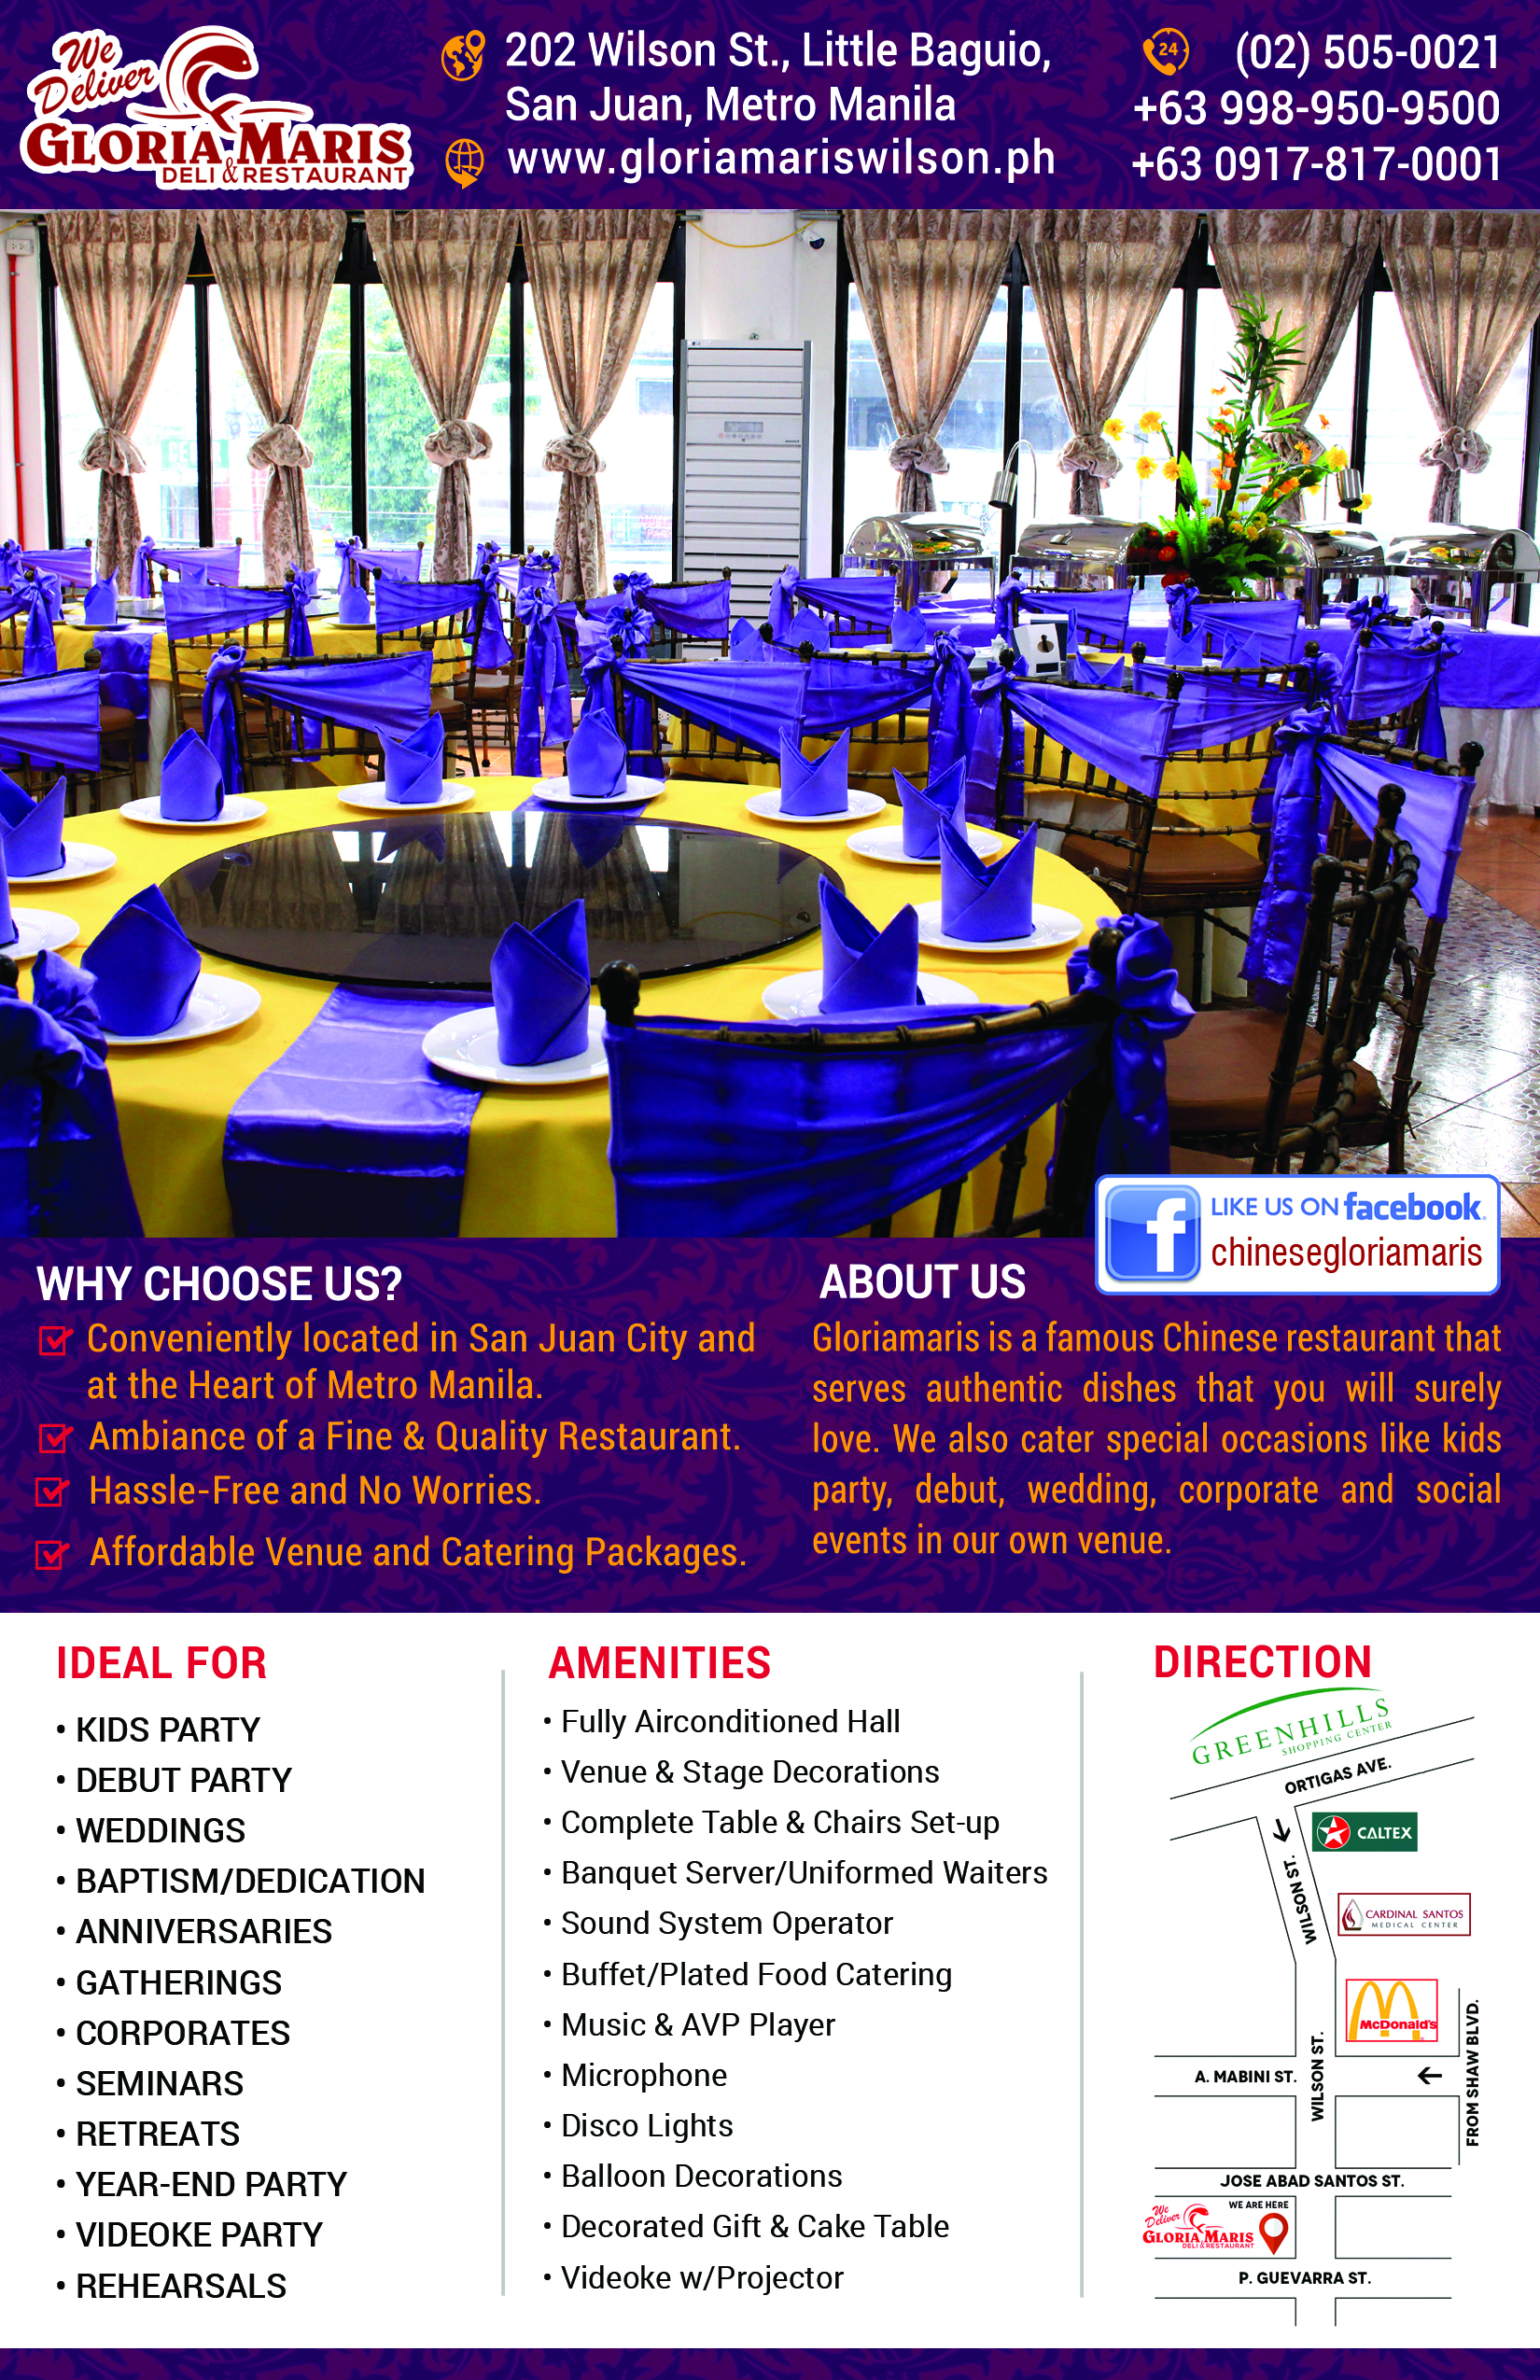 Affordable CateringServices